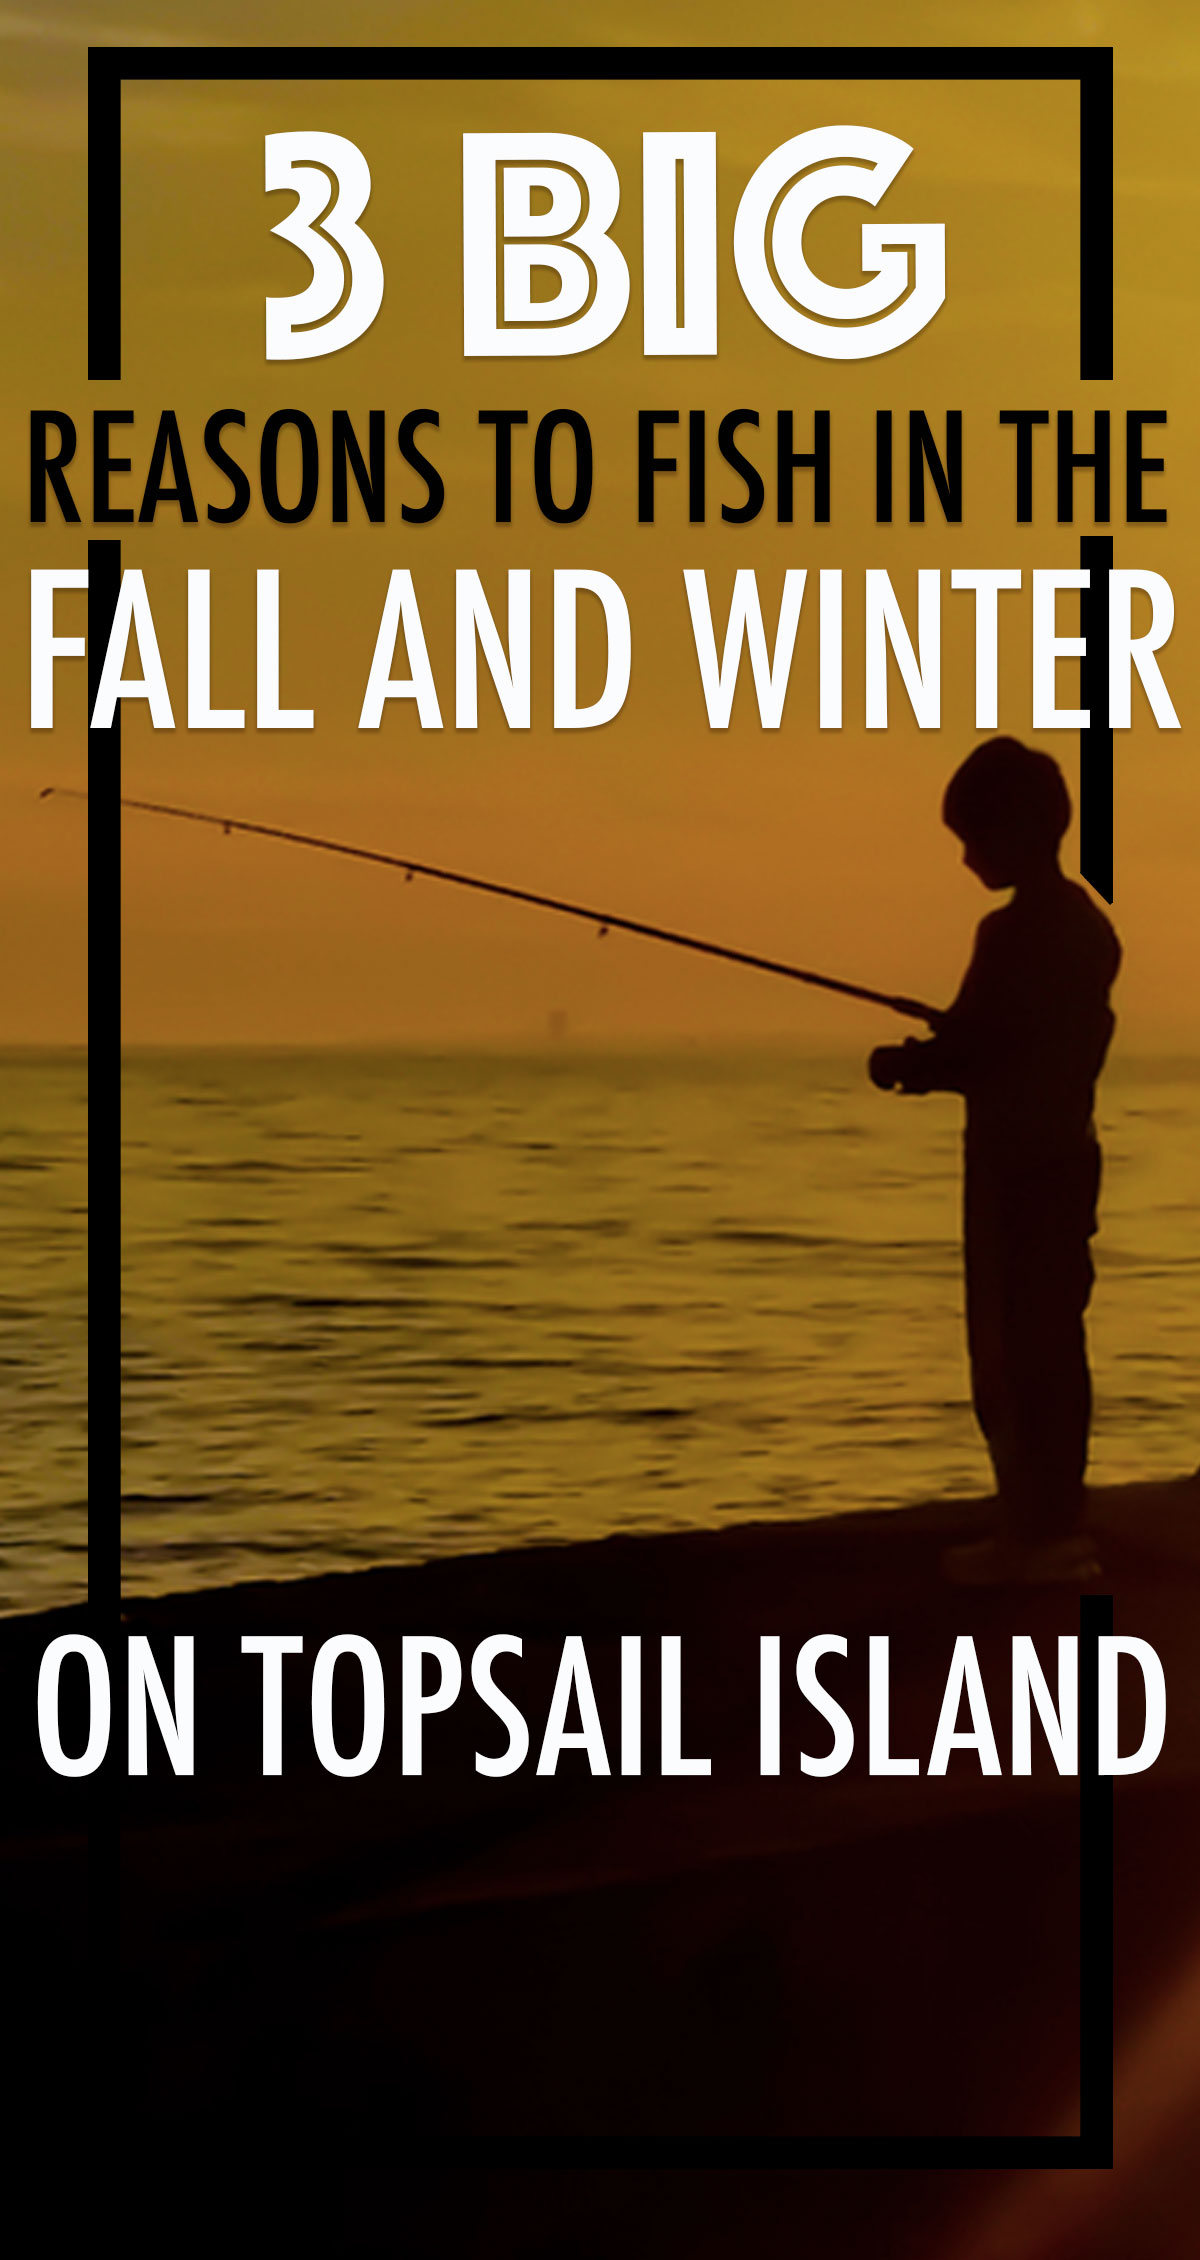 3 Big Reasons to Fish in the Fall and Winter on Topsail Island Pin